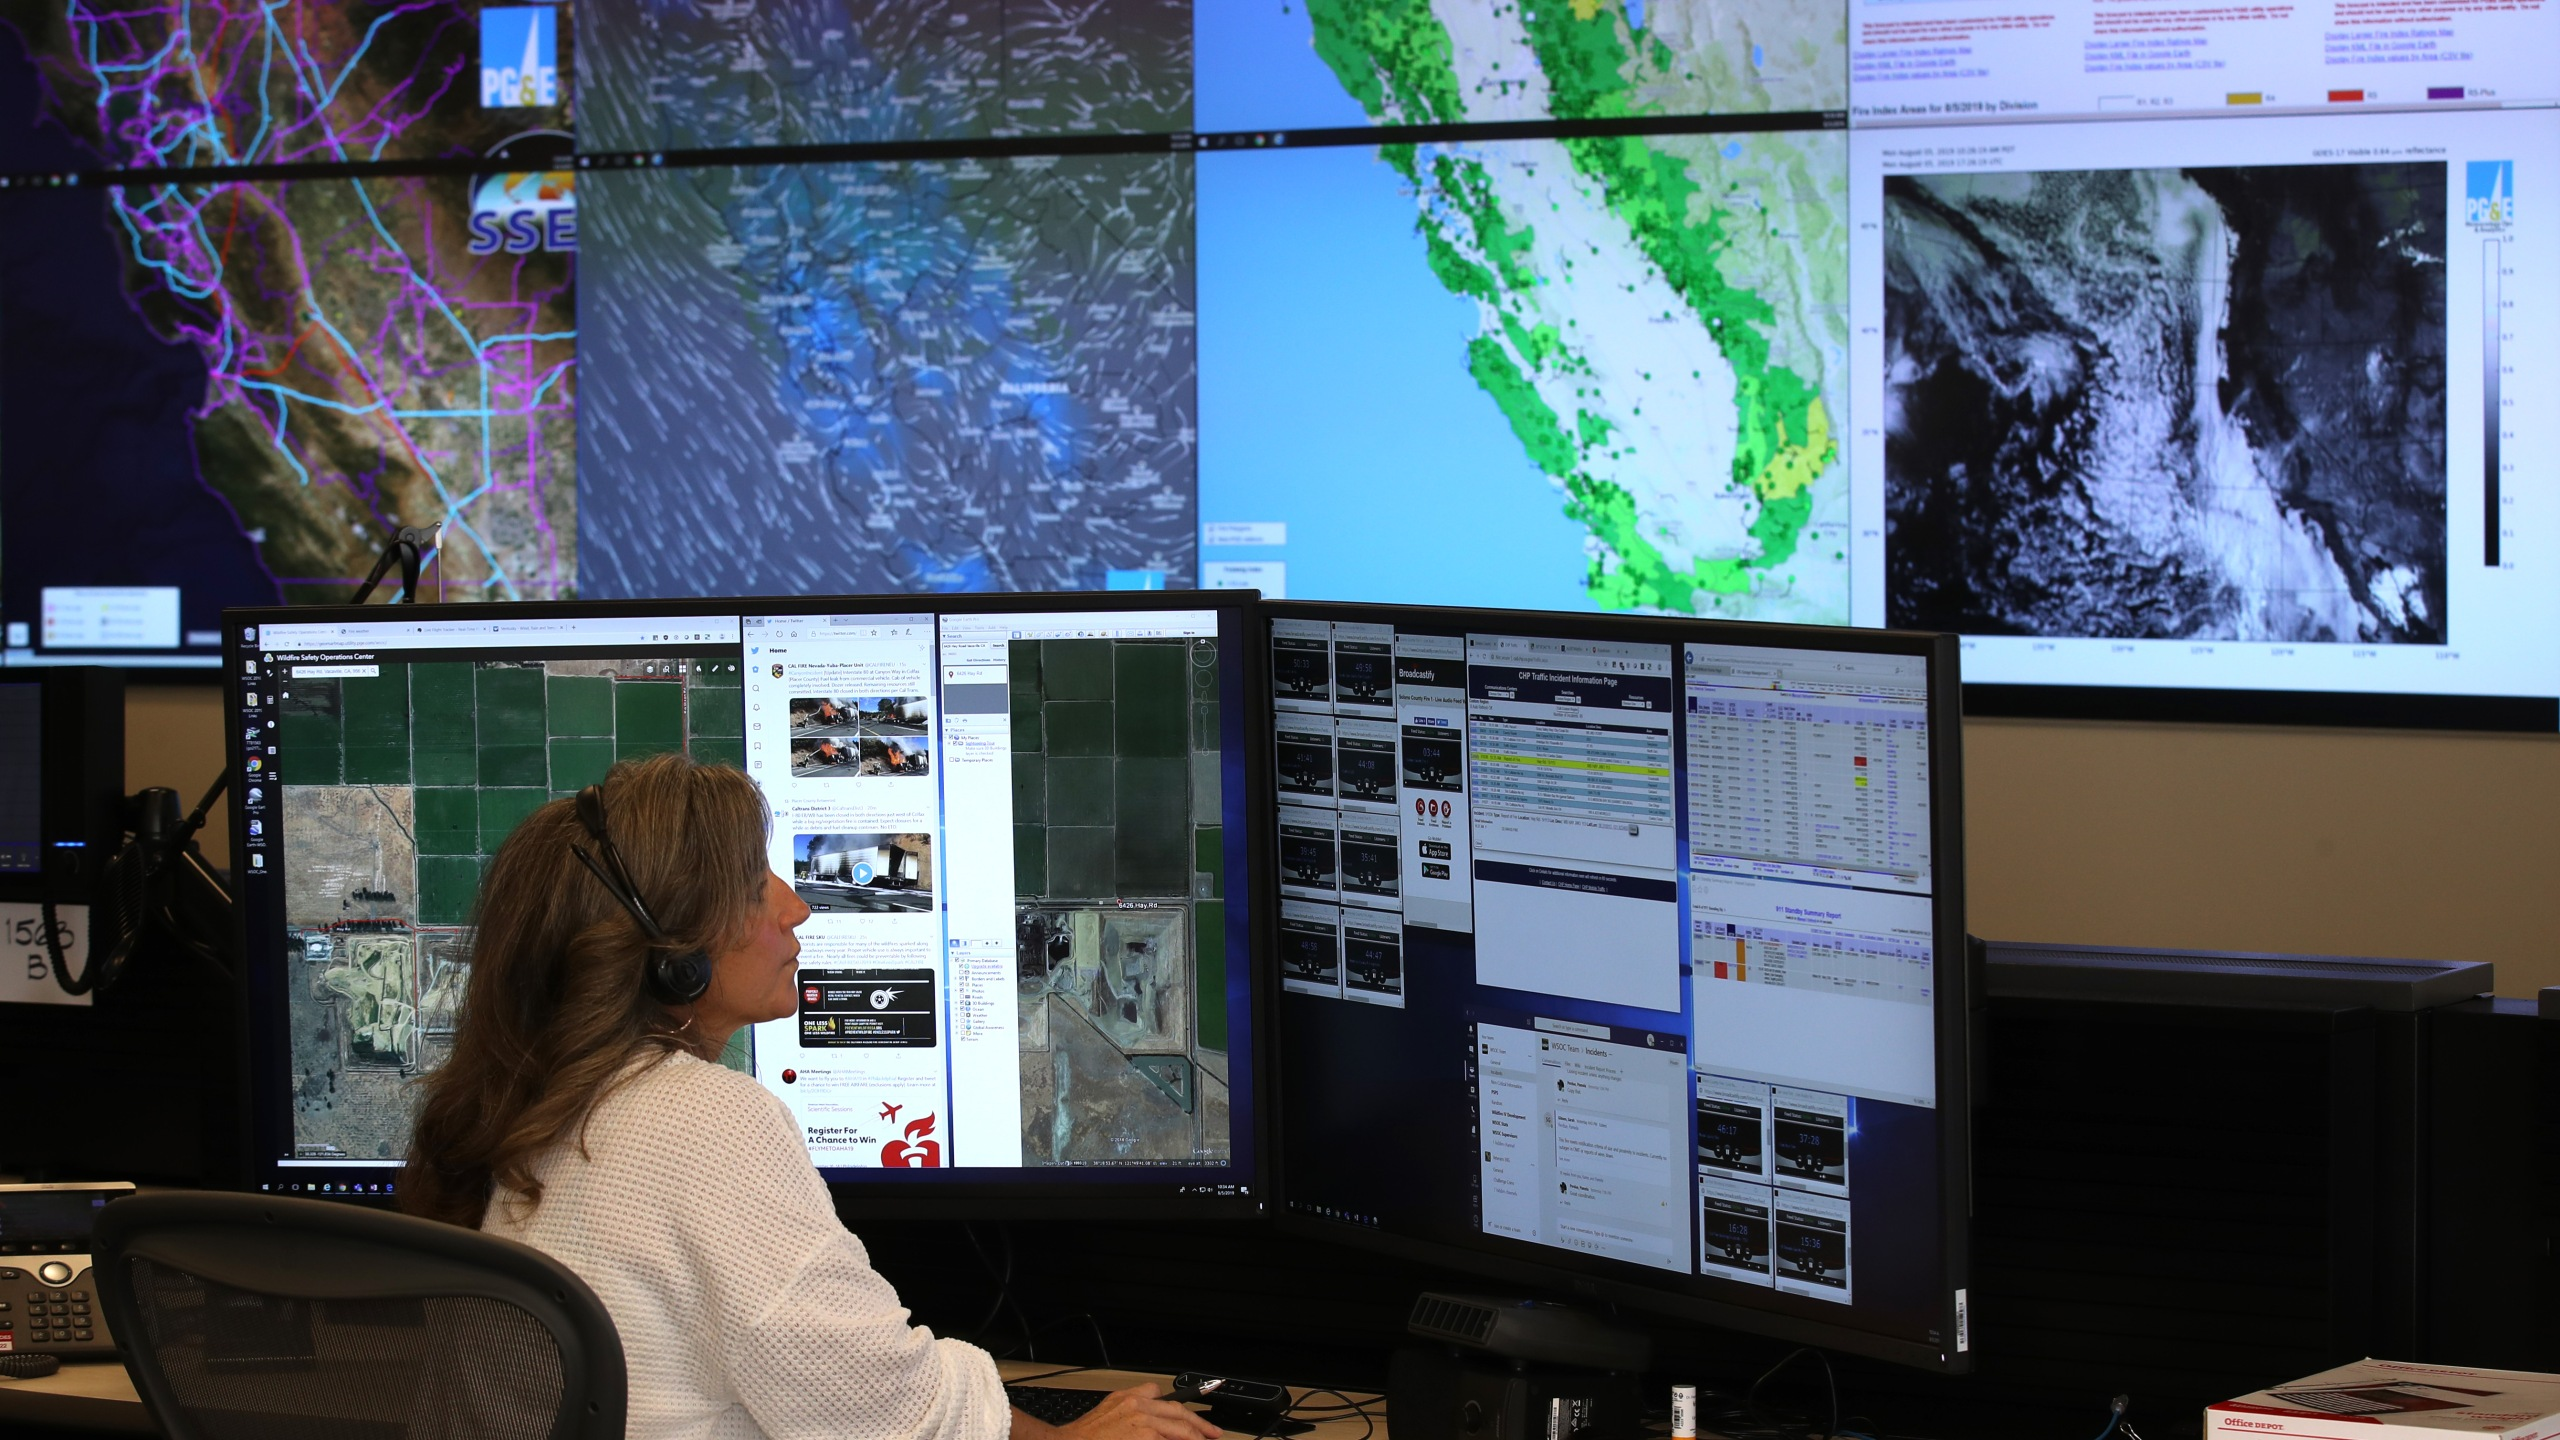 Pacific Gas and Electric Senior Wildfire Operations Center Analyst Sarah Gibson monitors weather and satellite images of fire areas at the PG&E Wildfire Safety Operations Center on Aug. 5, 2019, in San Francisco. (Credit: Justin Sullivan/Getty Images)